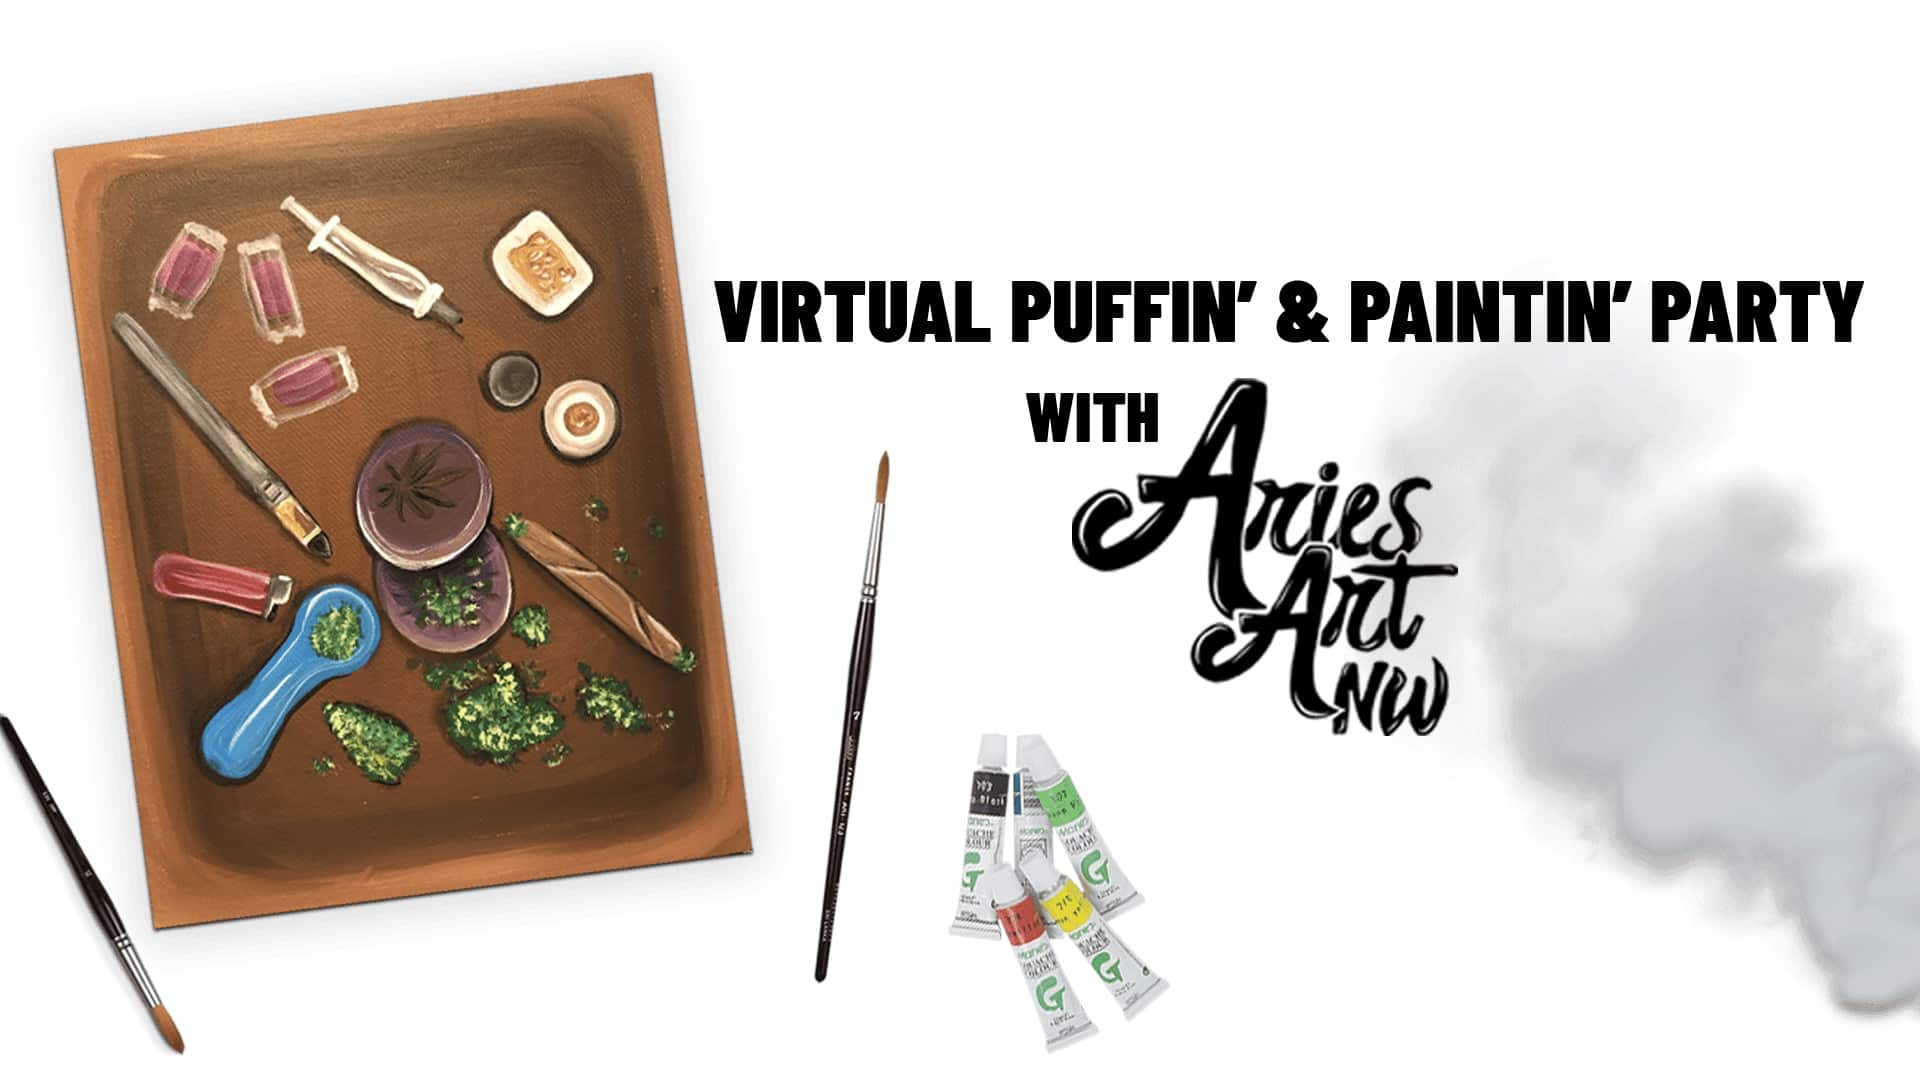 Puffin' & Paintin' Party 4/20/20